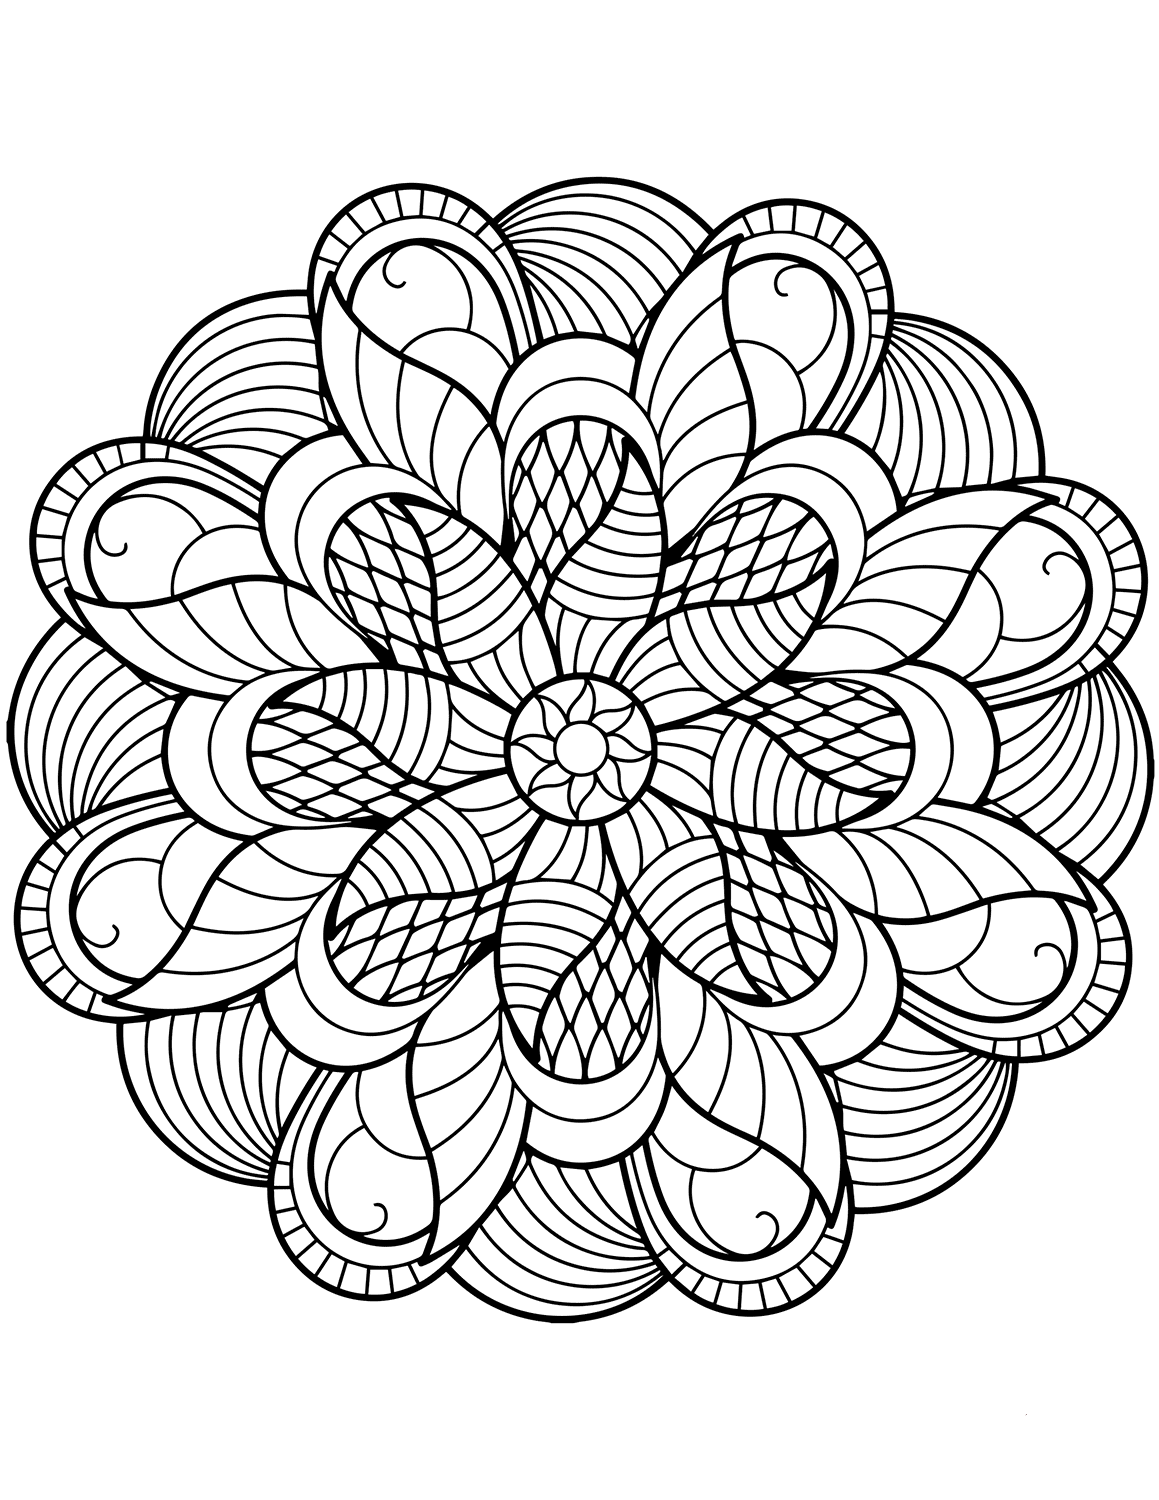 free coloring mandalas the coolest free coloring pages for adults free coloring mandalas